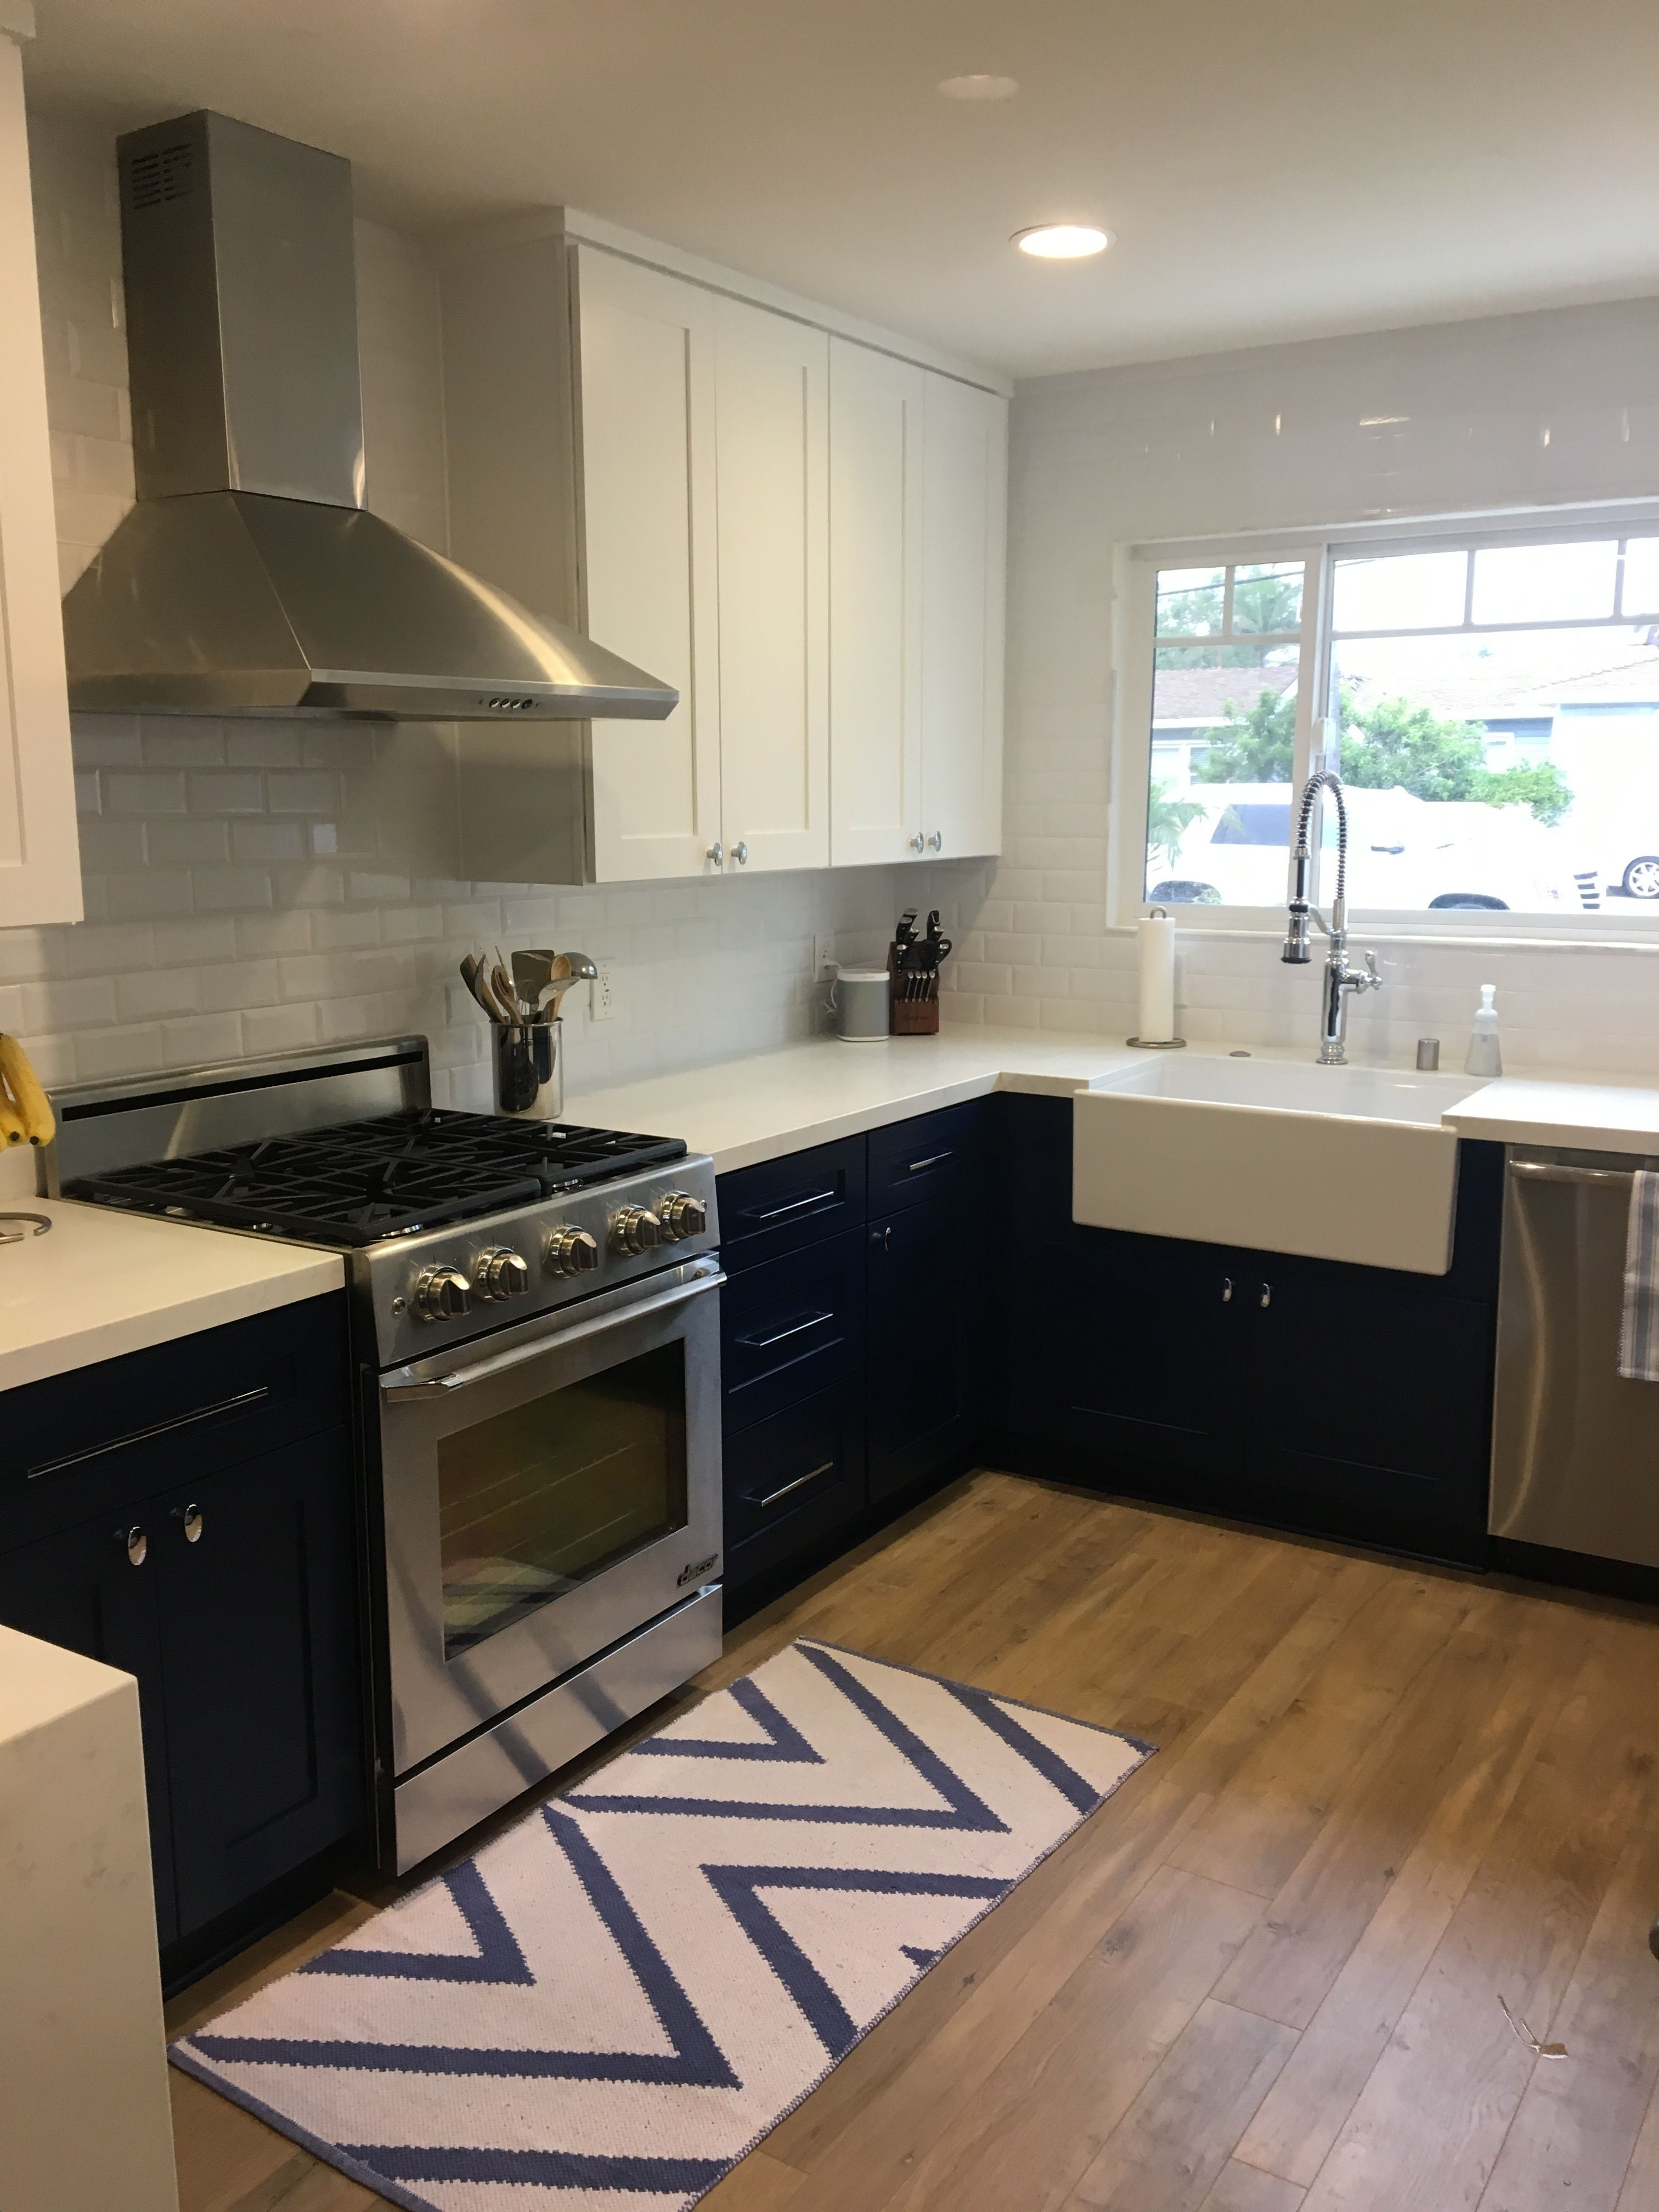 Navy kitchen cabinets & farmhouse sink. Paint color: Dunn ...